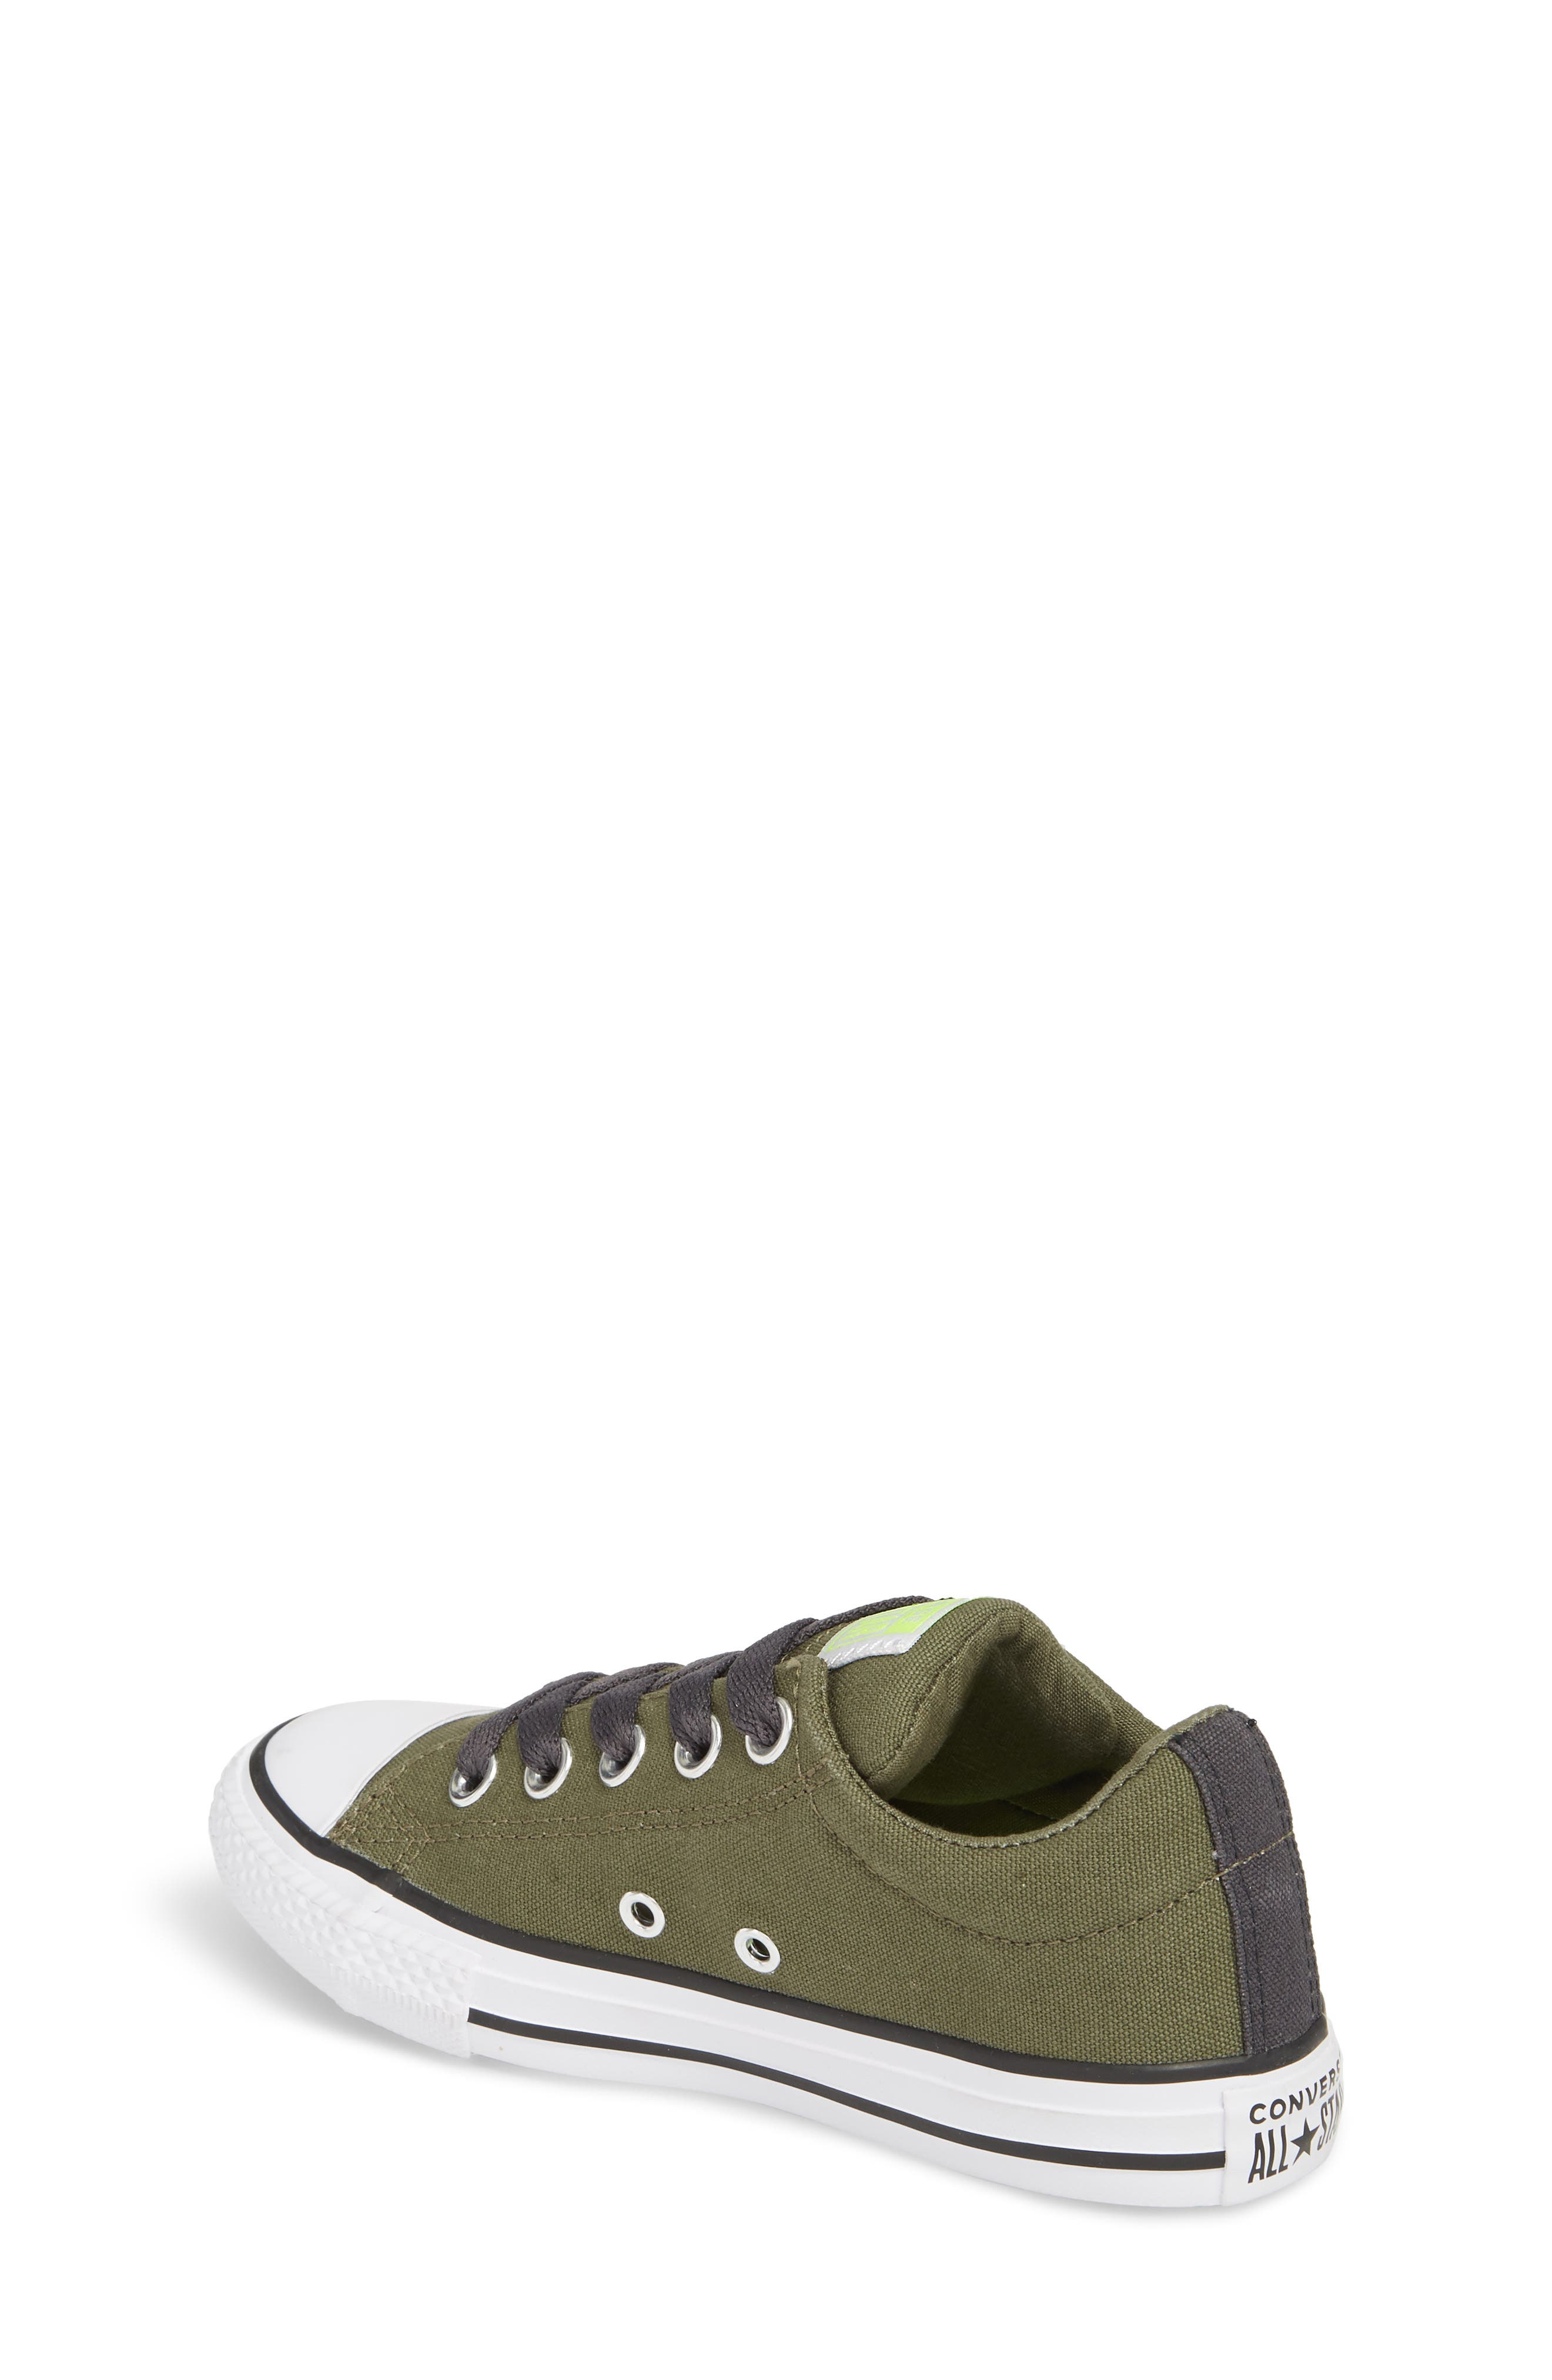 Chuck Taylor<sup>®</sup> All Star<sup>®</sup> Street Slip Low Top Sneaker,                             Alternate thumbnail 2, color,                             322